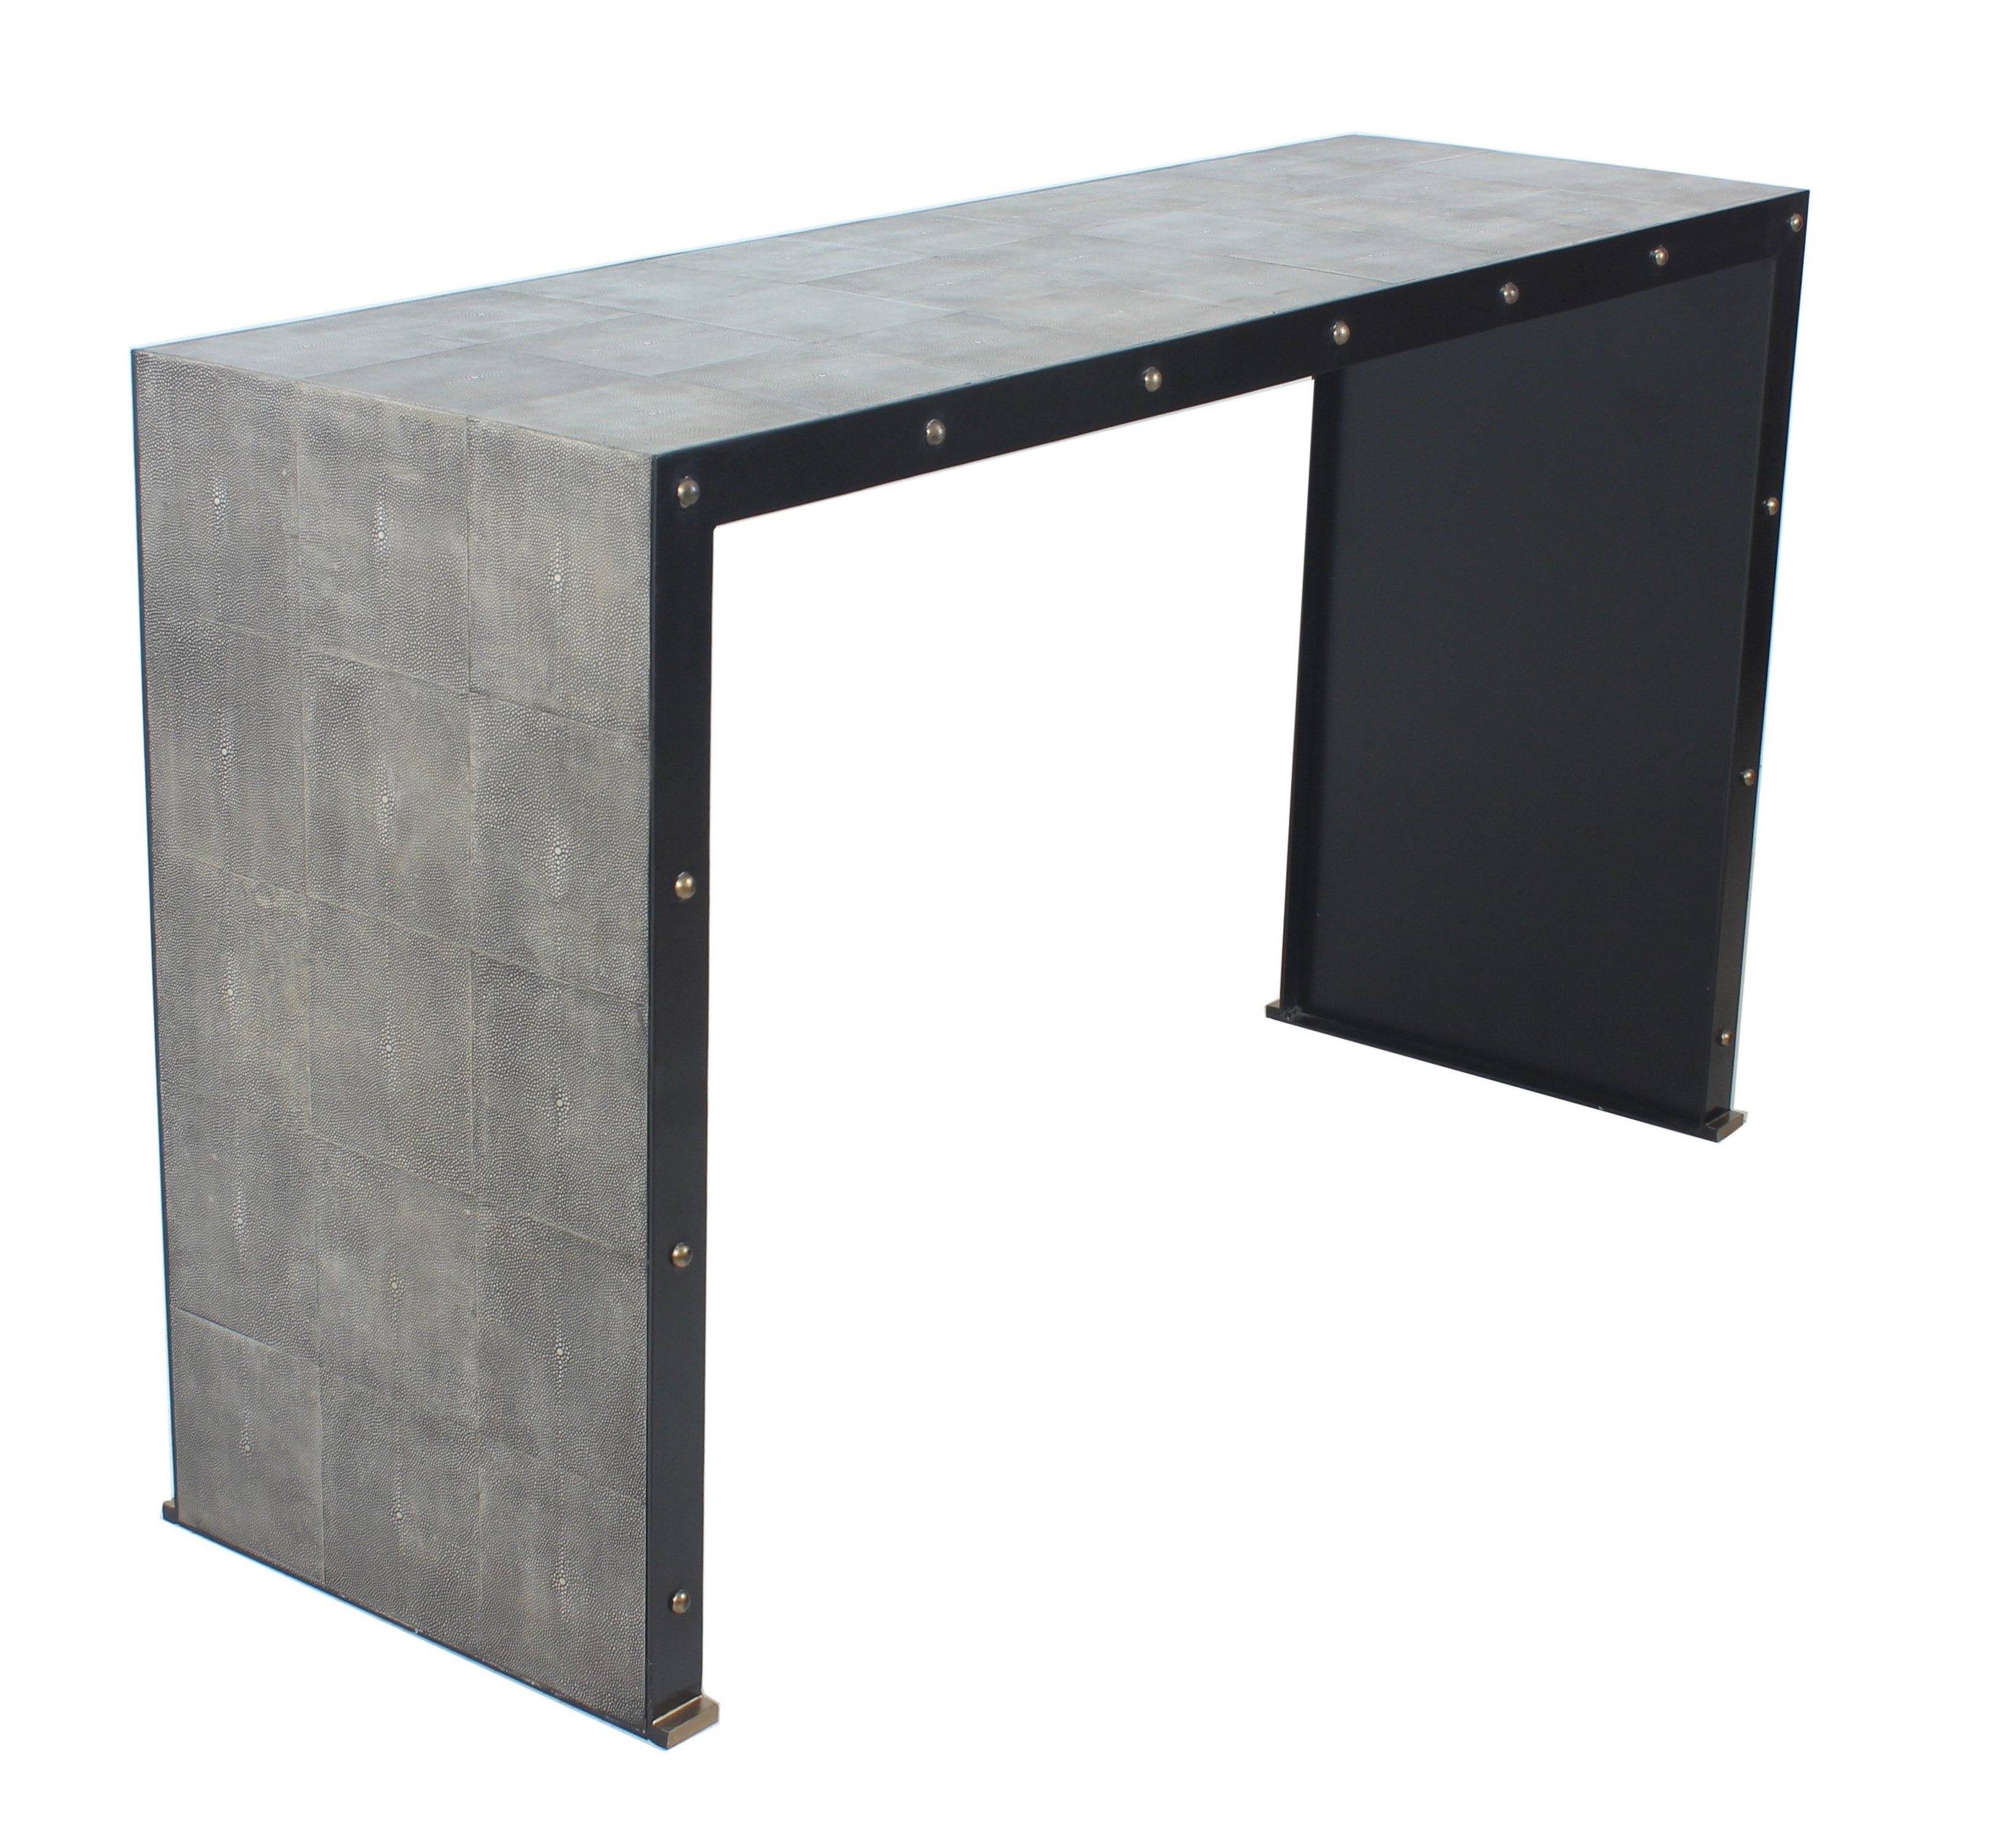 Stock Program DUNE SHAGREEN LEATHER CONSOLE LHE11107ST From Walter E.  Smithe Furniture + Design